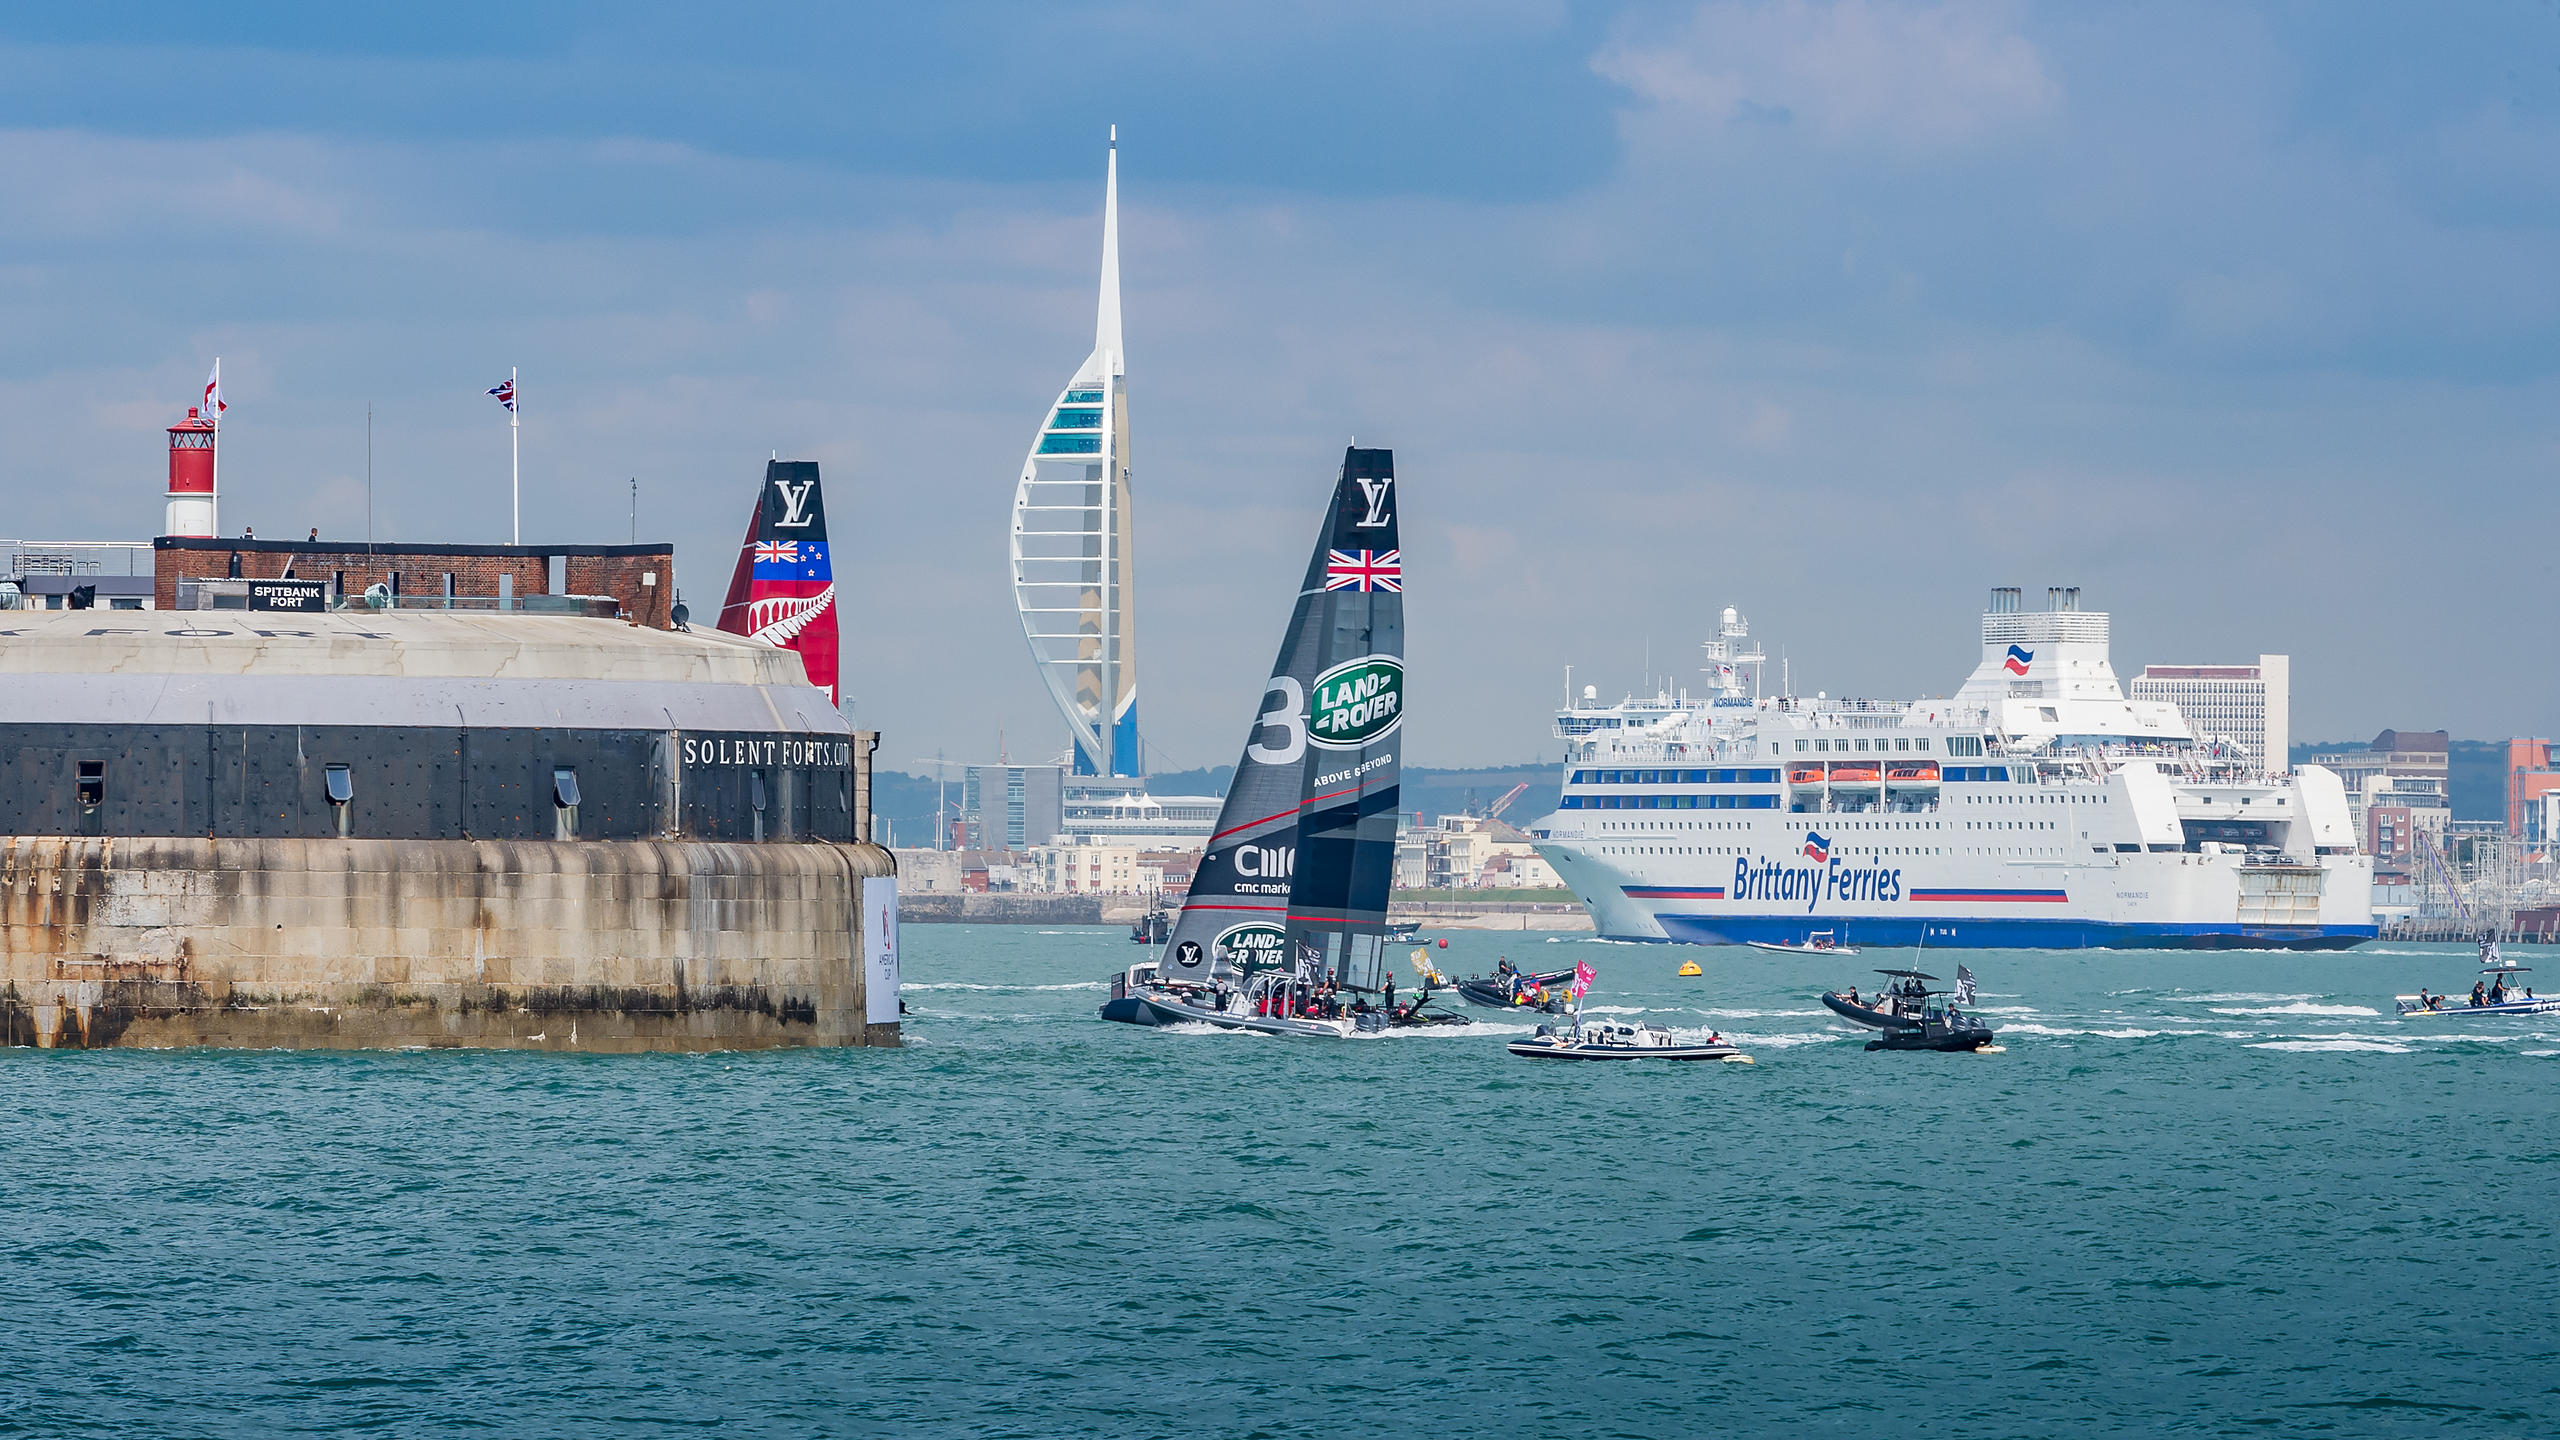 America's Cup 2016 Yachts in the Solent, with Spitbank Fort, Spinnaker Tower and a Brittany Ferry